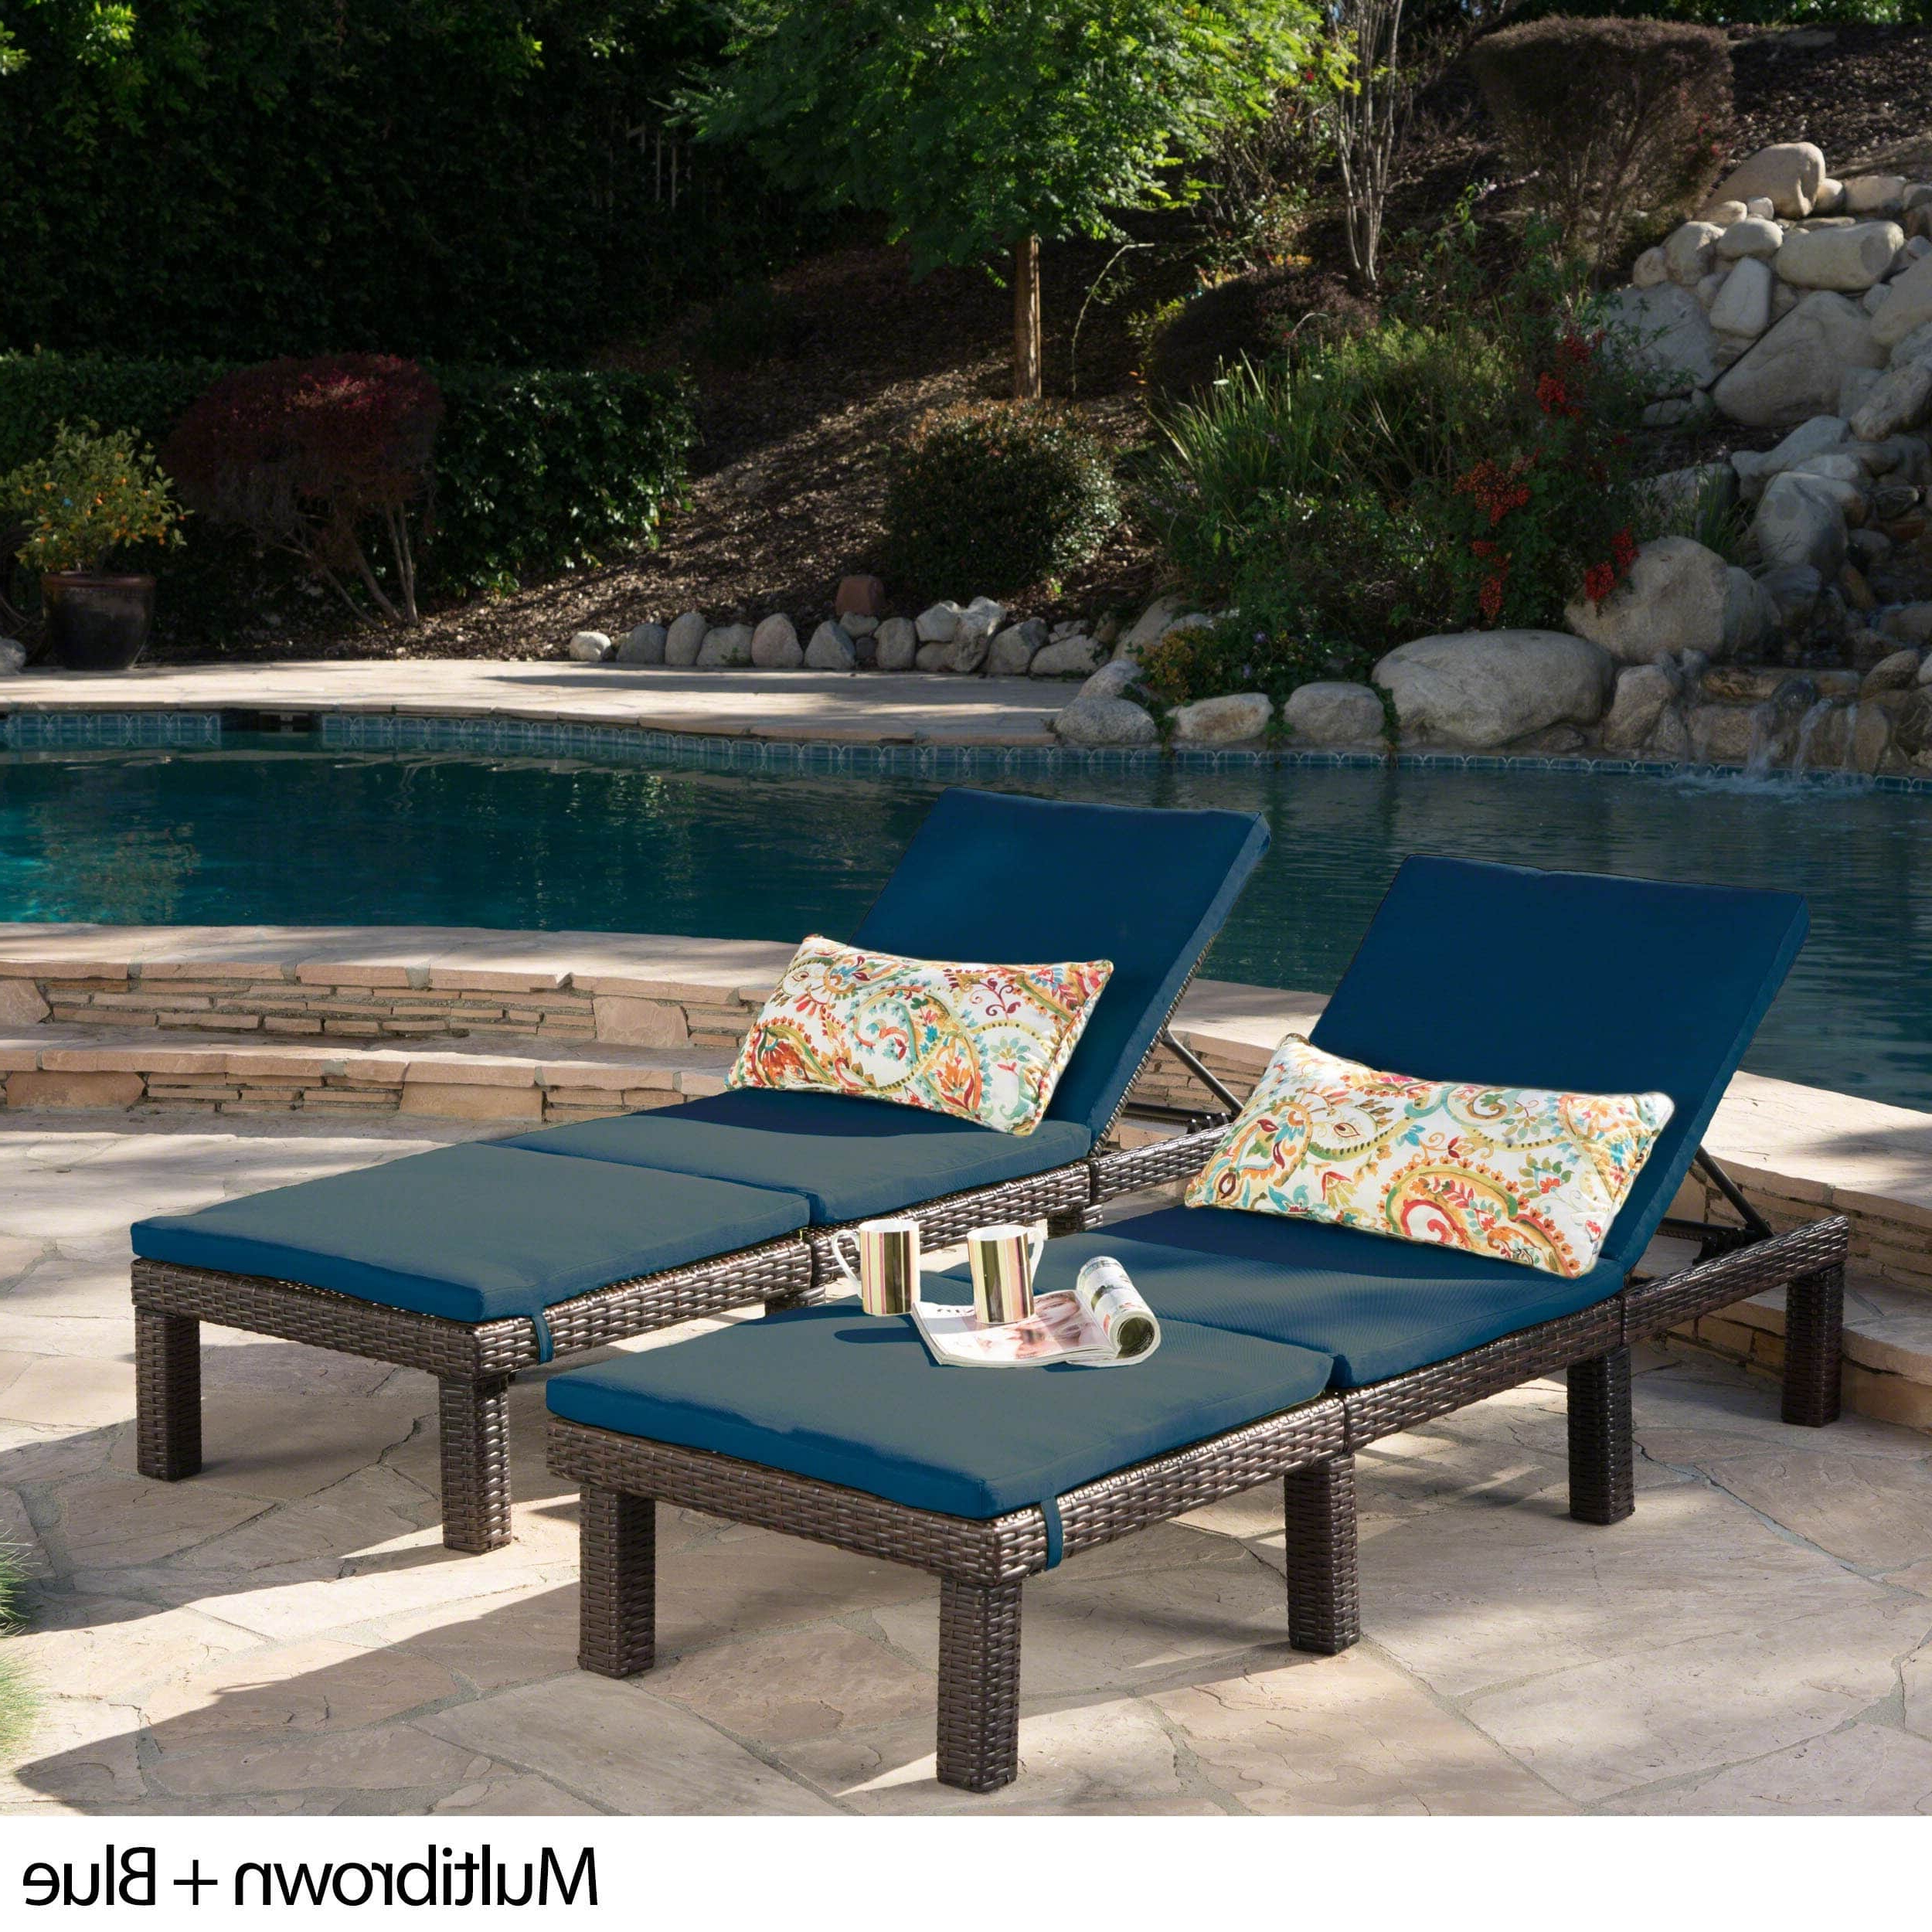 Jamaica Outdoor Chaise Lounges Regarding 2019 Jamaica Outdoor Chaise Lounge With Cushion (set Of 2) (View 8 of 25)